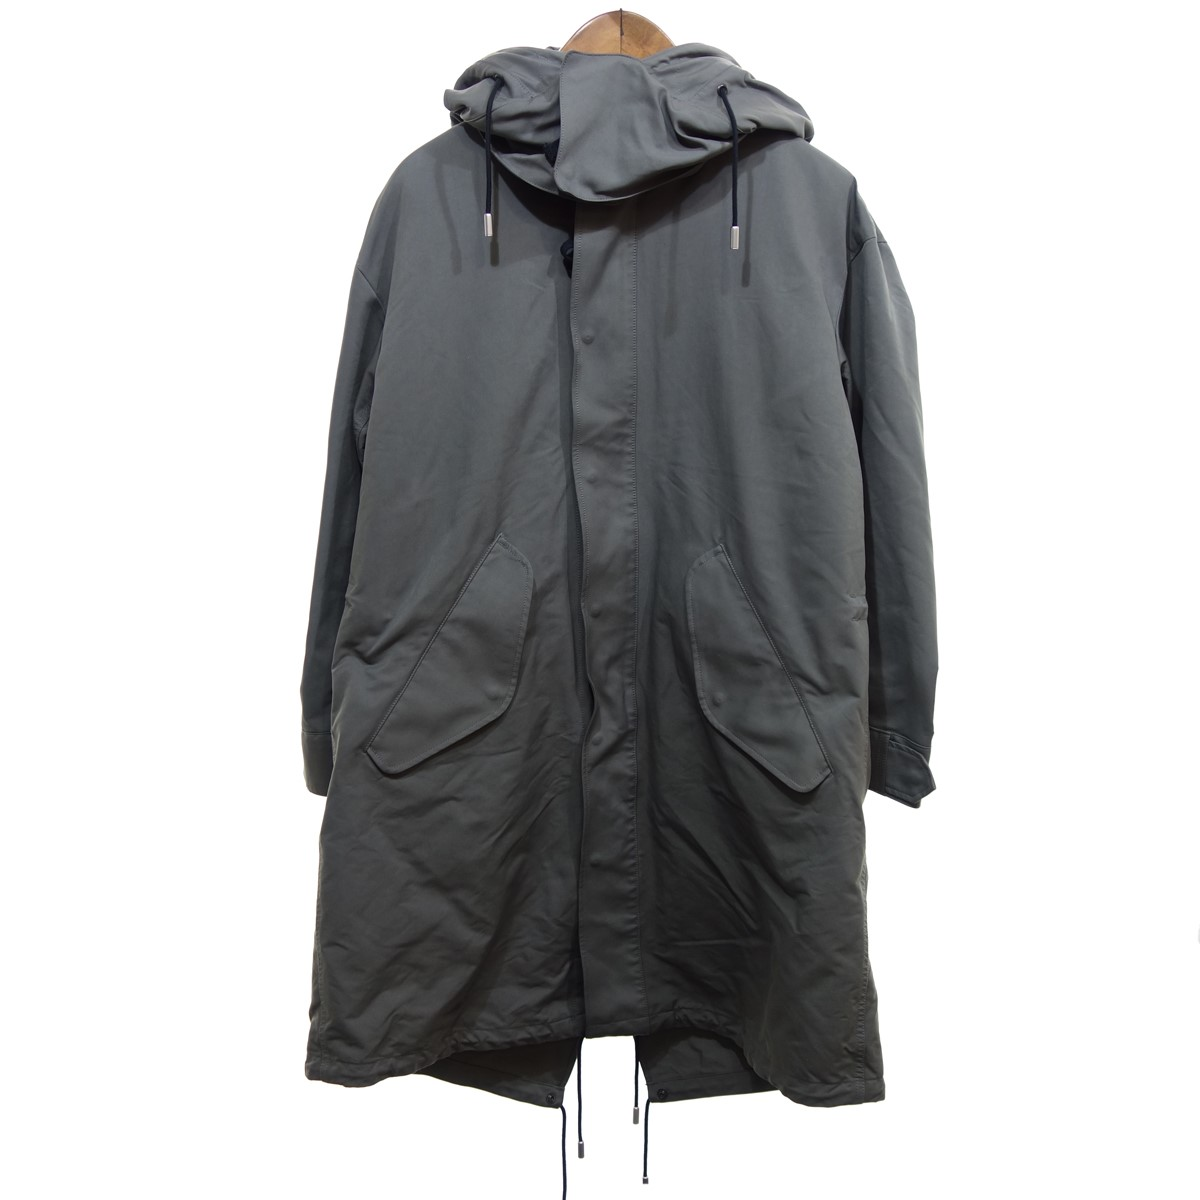 【中古】THE RERACS 【2019A/W】 PE/NY HIGH DENSITY PEACH LONG MODS COAT カーキ サイズ:46 【010320】(ザ リラクス)